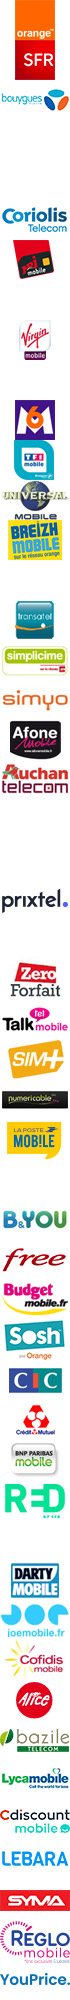 forfait La Poste Mobile Sim 24h/24 5Go 4G illimit� Sans engagement